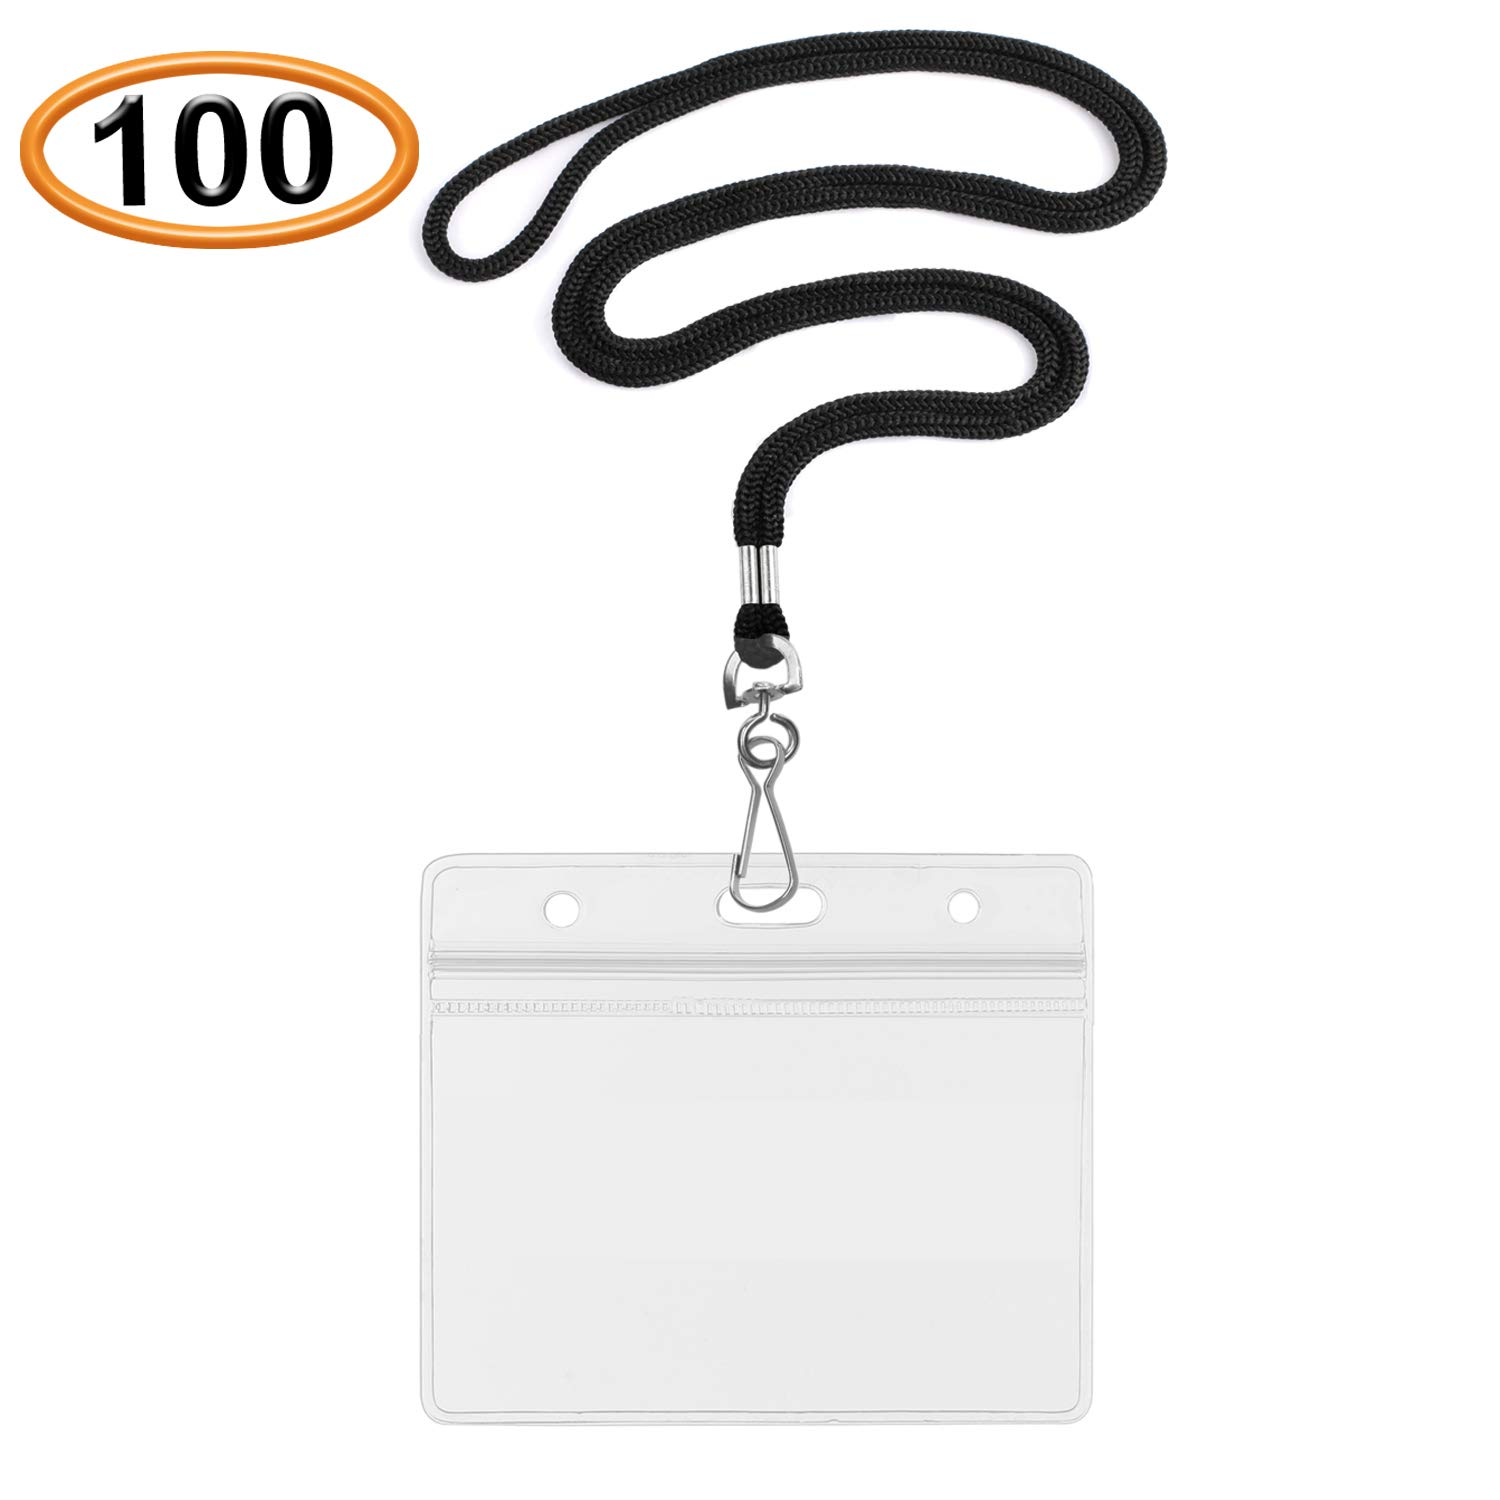 Summerhouse 100 Pack Transparent Plastic ID Name Tags Badge Holder and Woven 36'' Lanyard - Horizontal Fit 3.5x2.25'' Card - for Women Kids Men Students Police Nurse Employees